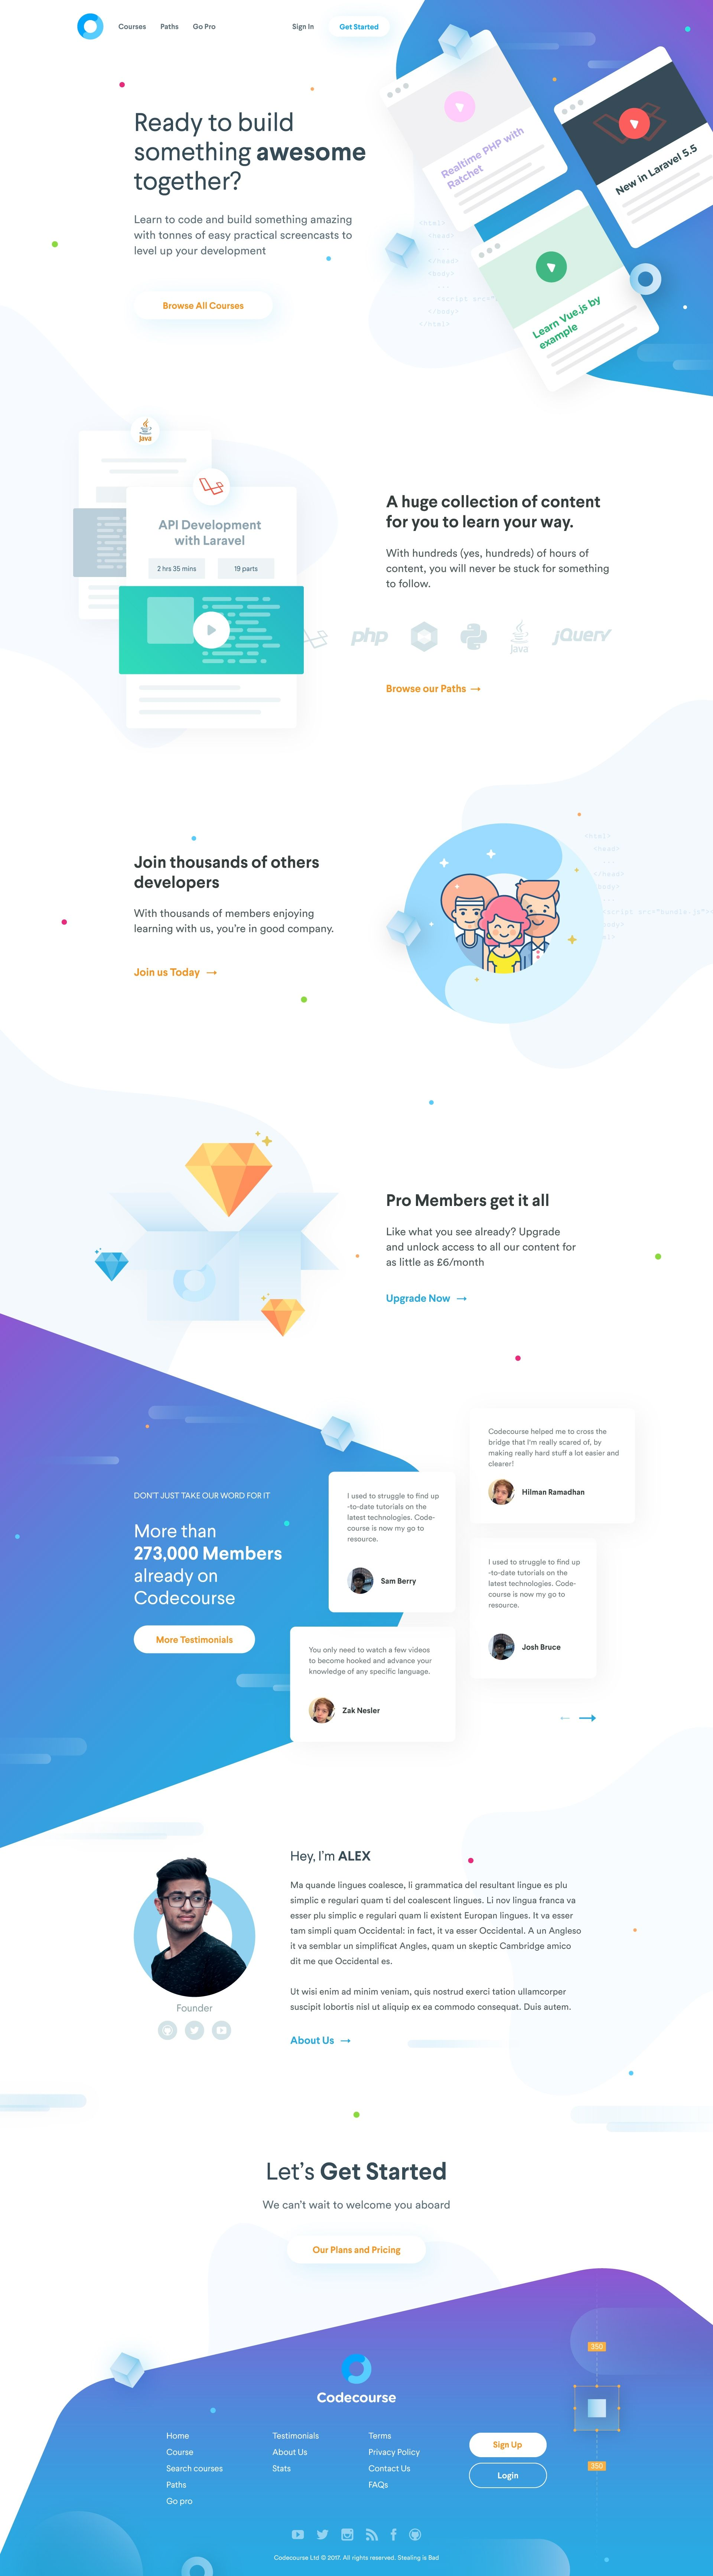 10 Inspirational Graphic Design Trends For 2018 Tendencias De Design Grafico Web Design Design Grafico Inspiracao